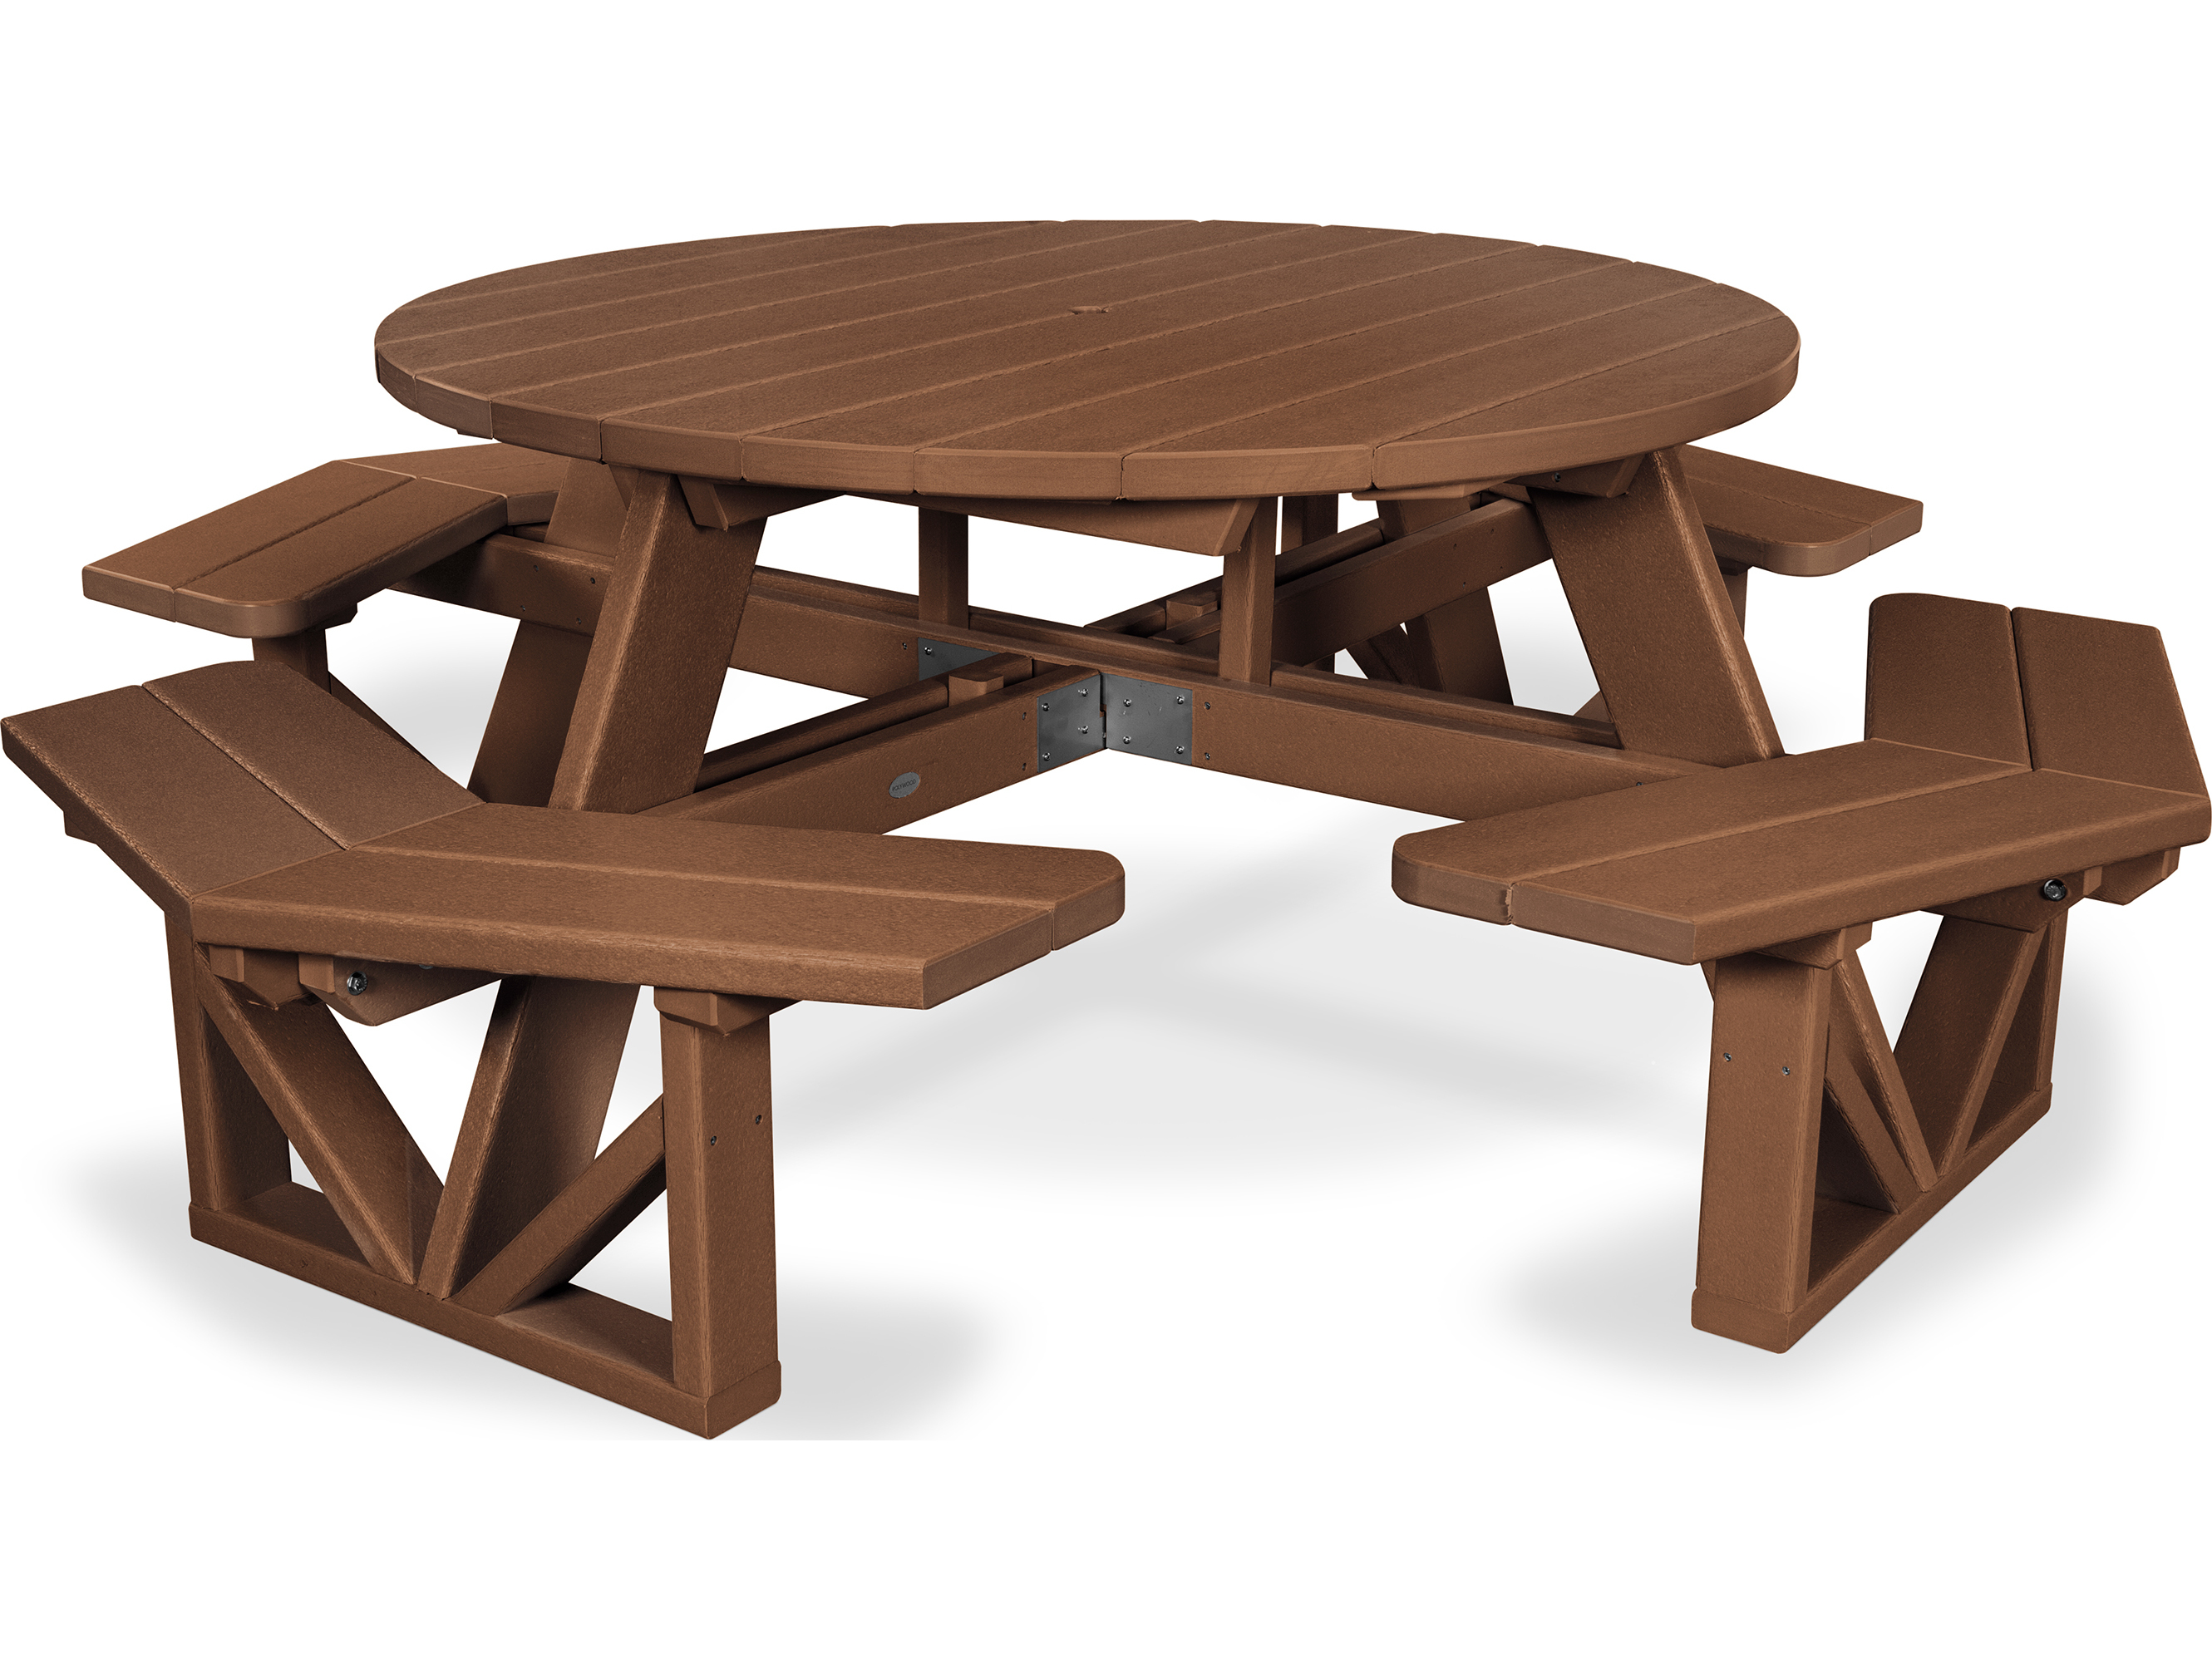 POLYWOOD Park Recycled Plastic Round Table PWPH - Recycled plastic round picnic table